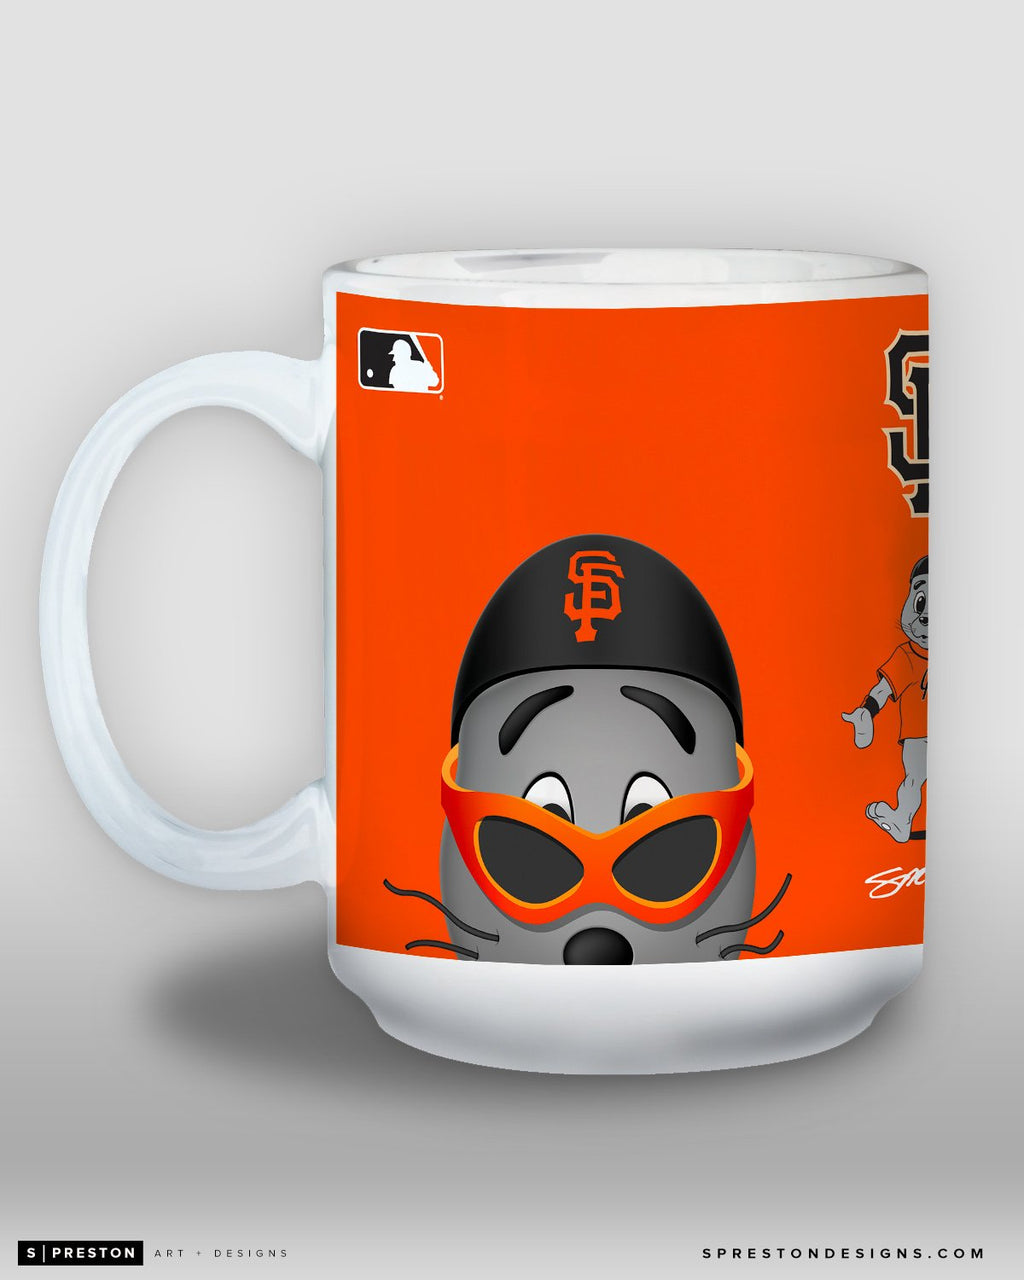 Minimalist Lou Seal Coffee Mug - MLB Licensed - San Francisco Giants Mascot